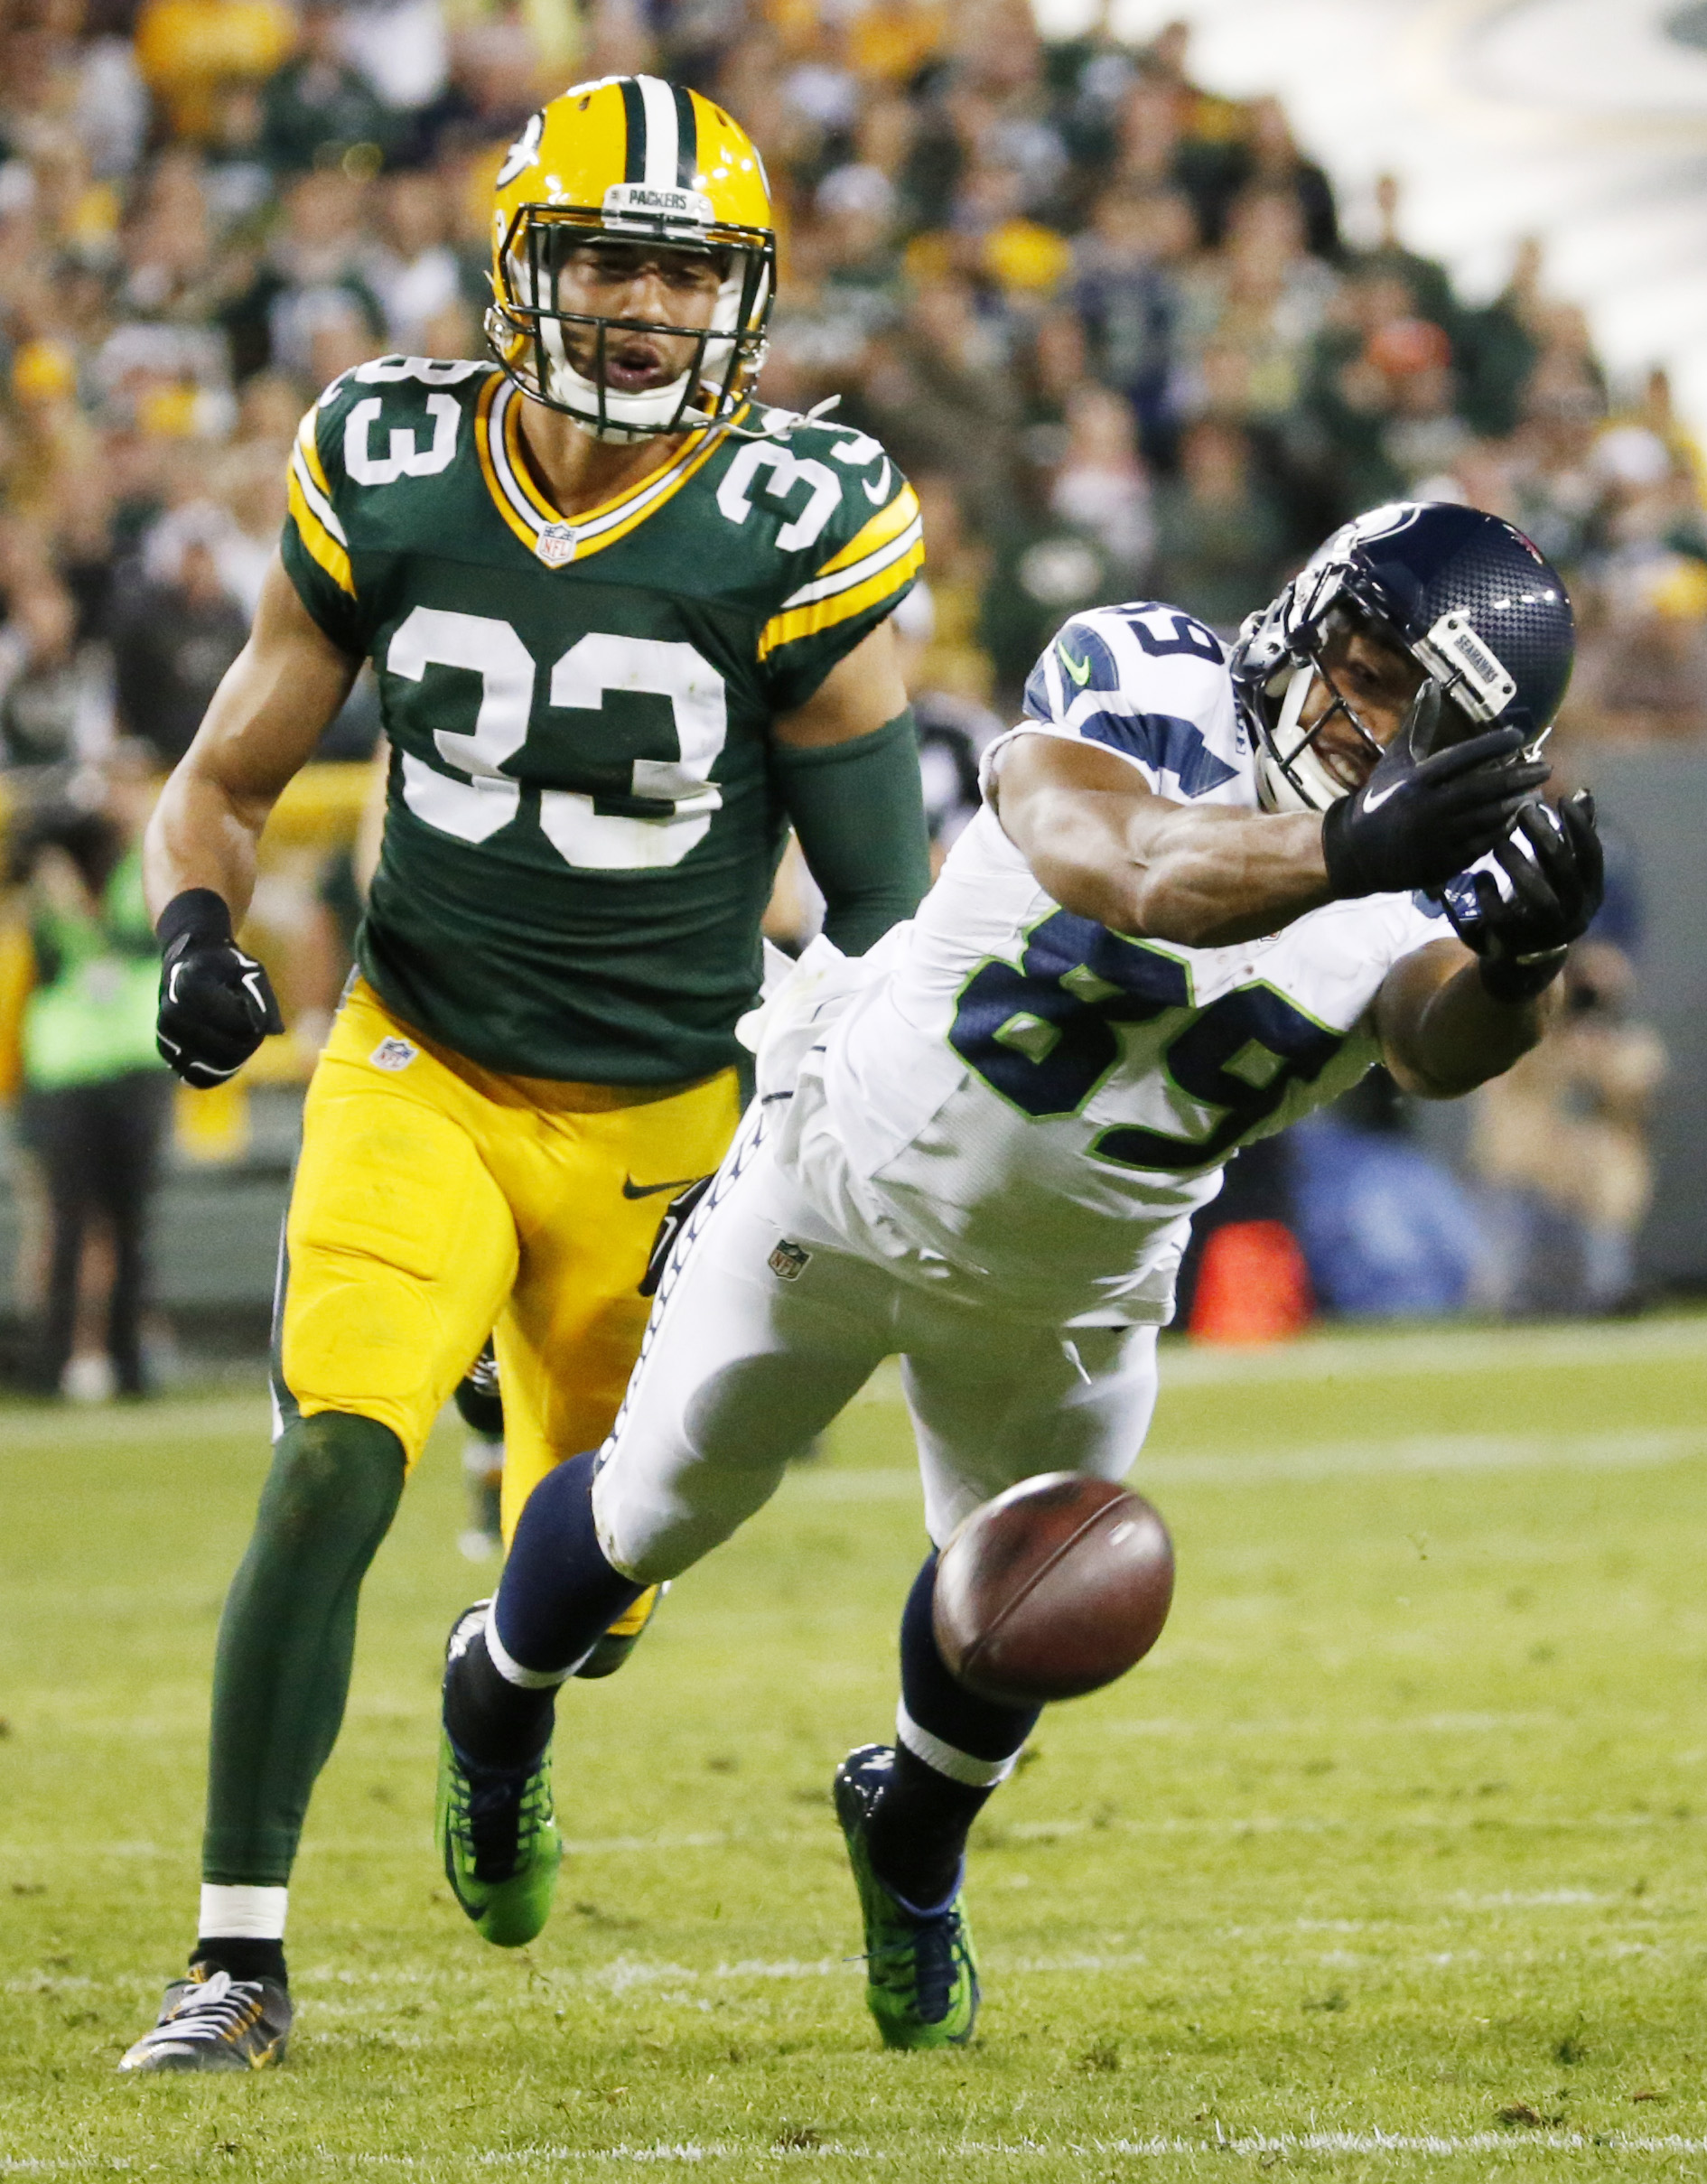 Seattle Seahawks' Doug Baldwin can't catch a pass in front of Green Bay Packers' Micah Hyde (33) during the second half of an NFL football game Sunday, Sept. 20, 2015, in Green Bay, Wis. (AP Photo/Mike Roemer)